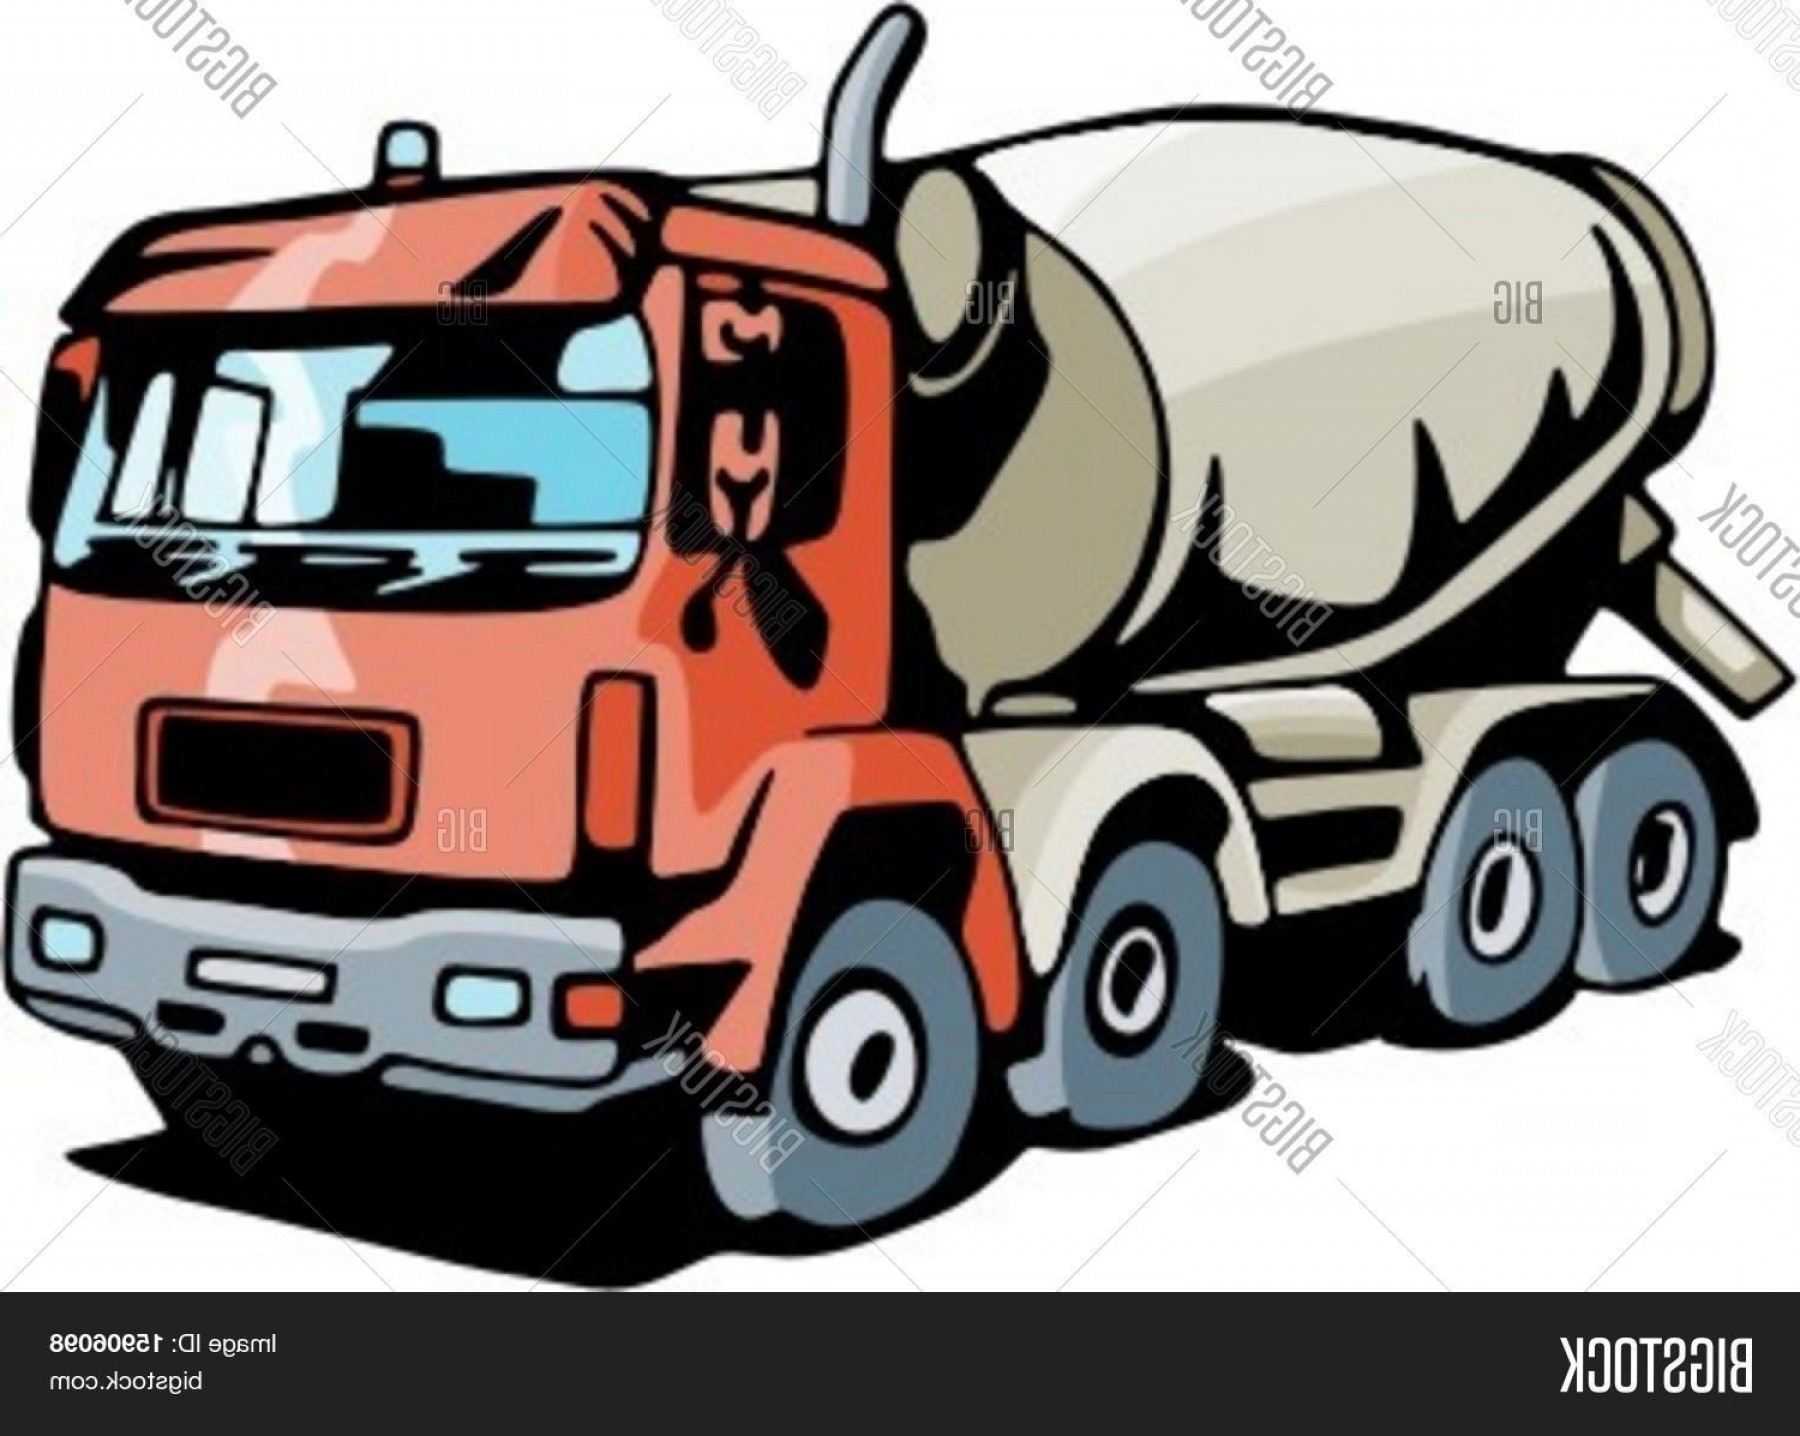 Vector Concrete Truck: Stock Vector Concrete Mixer Truck Check My Portfolio For Many More Images Of This Series